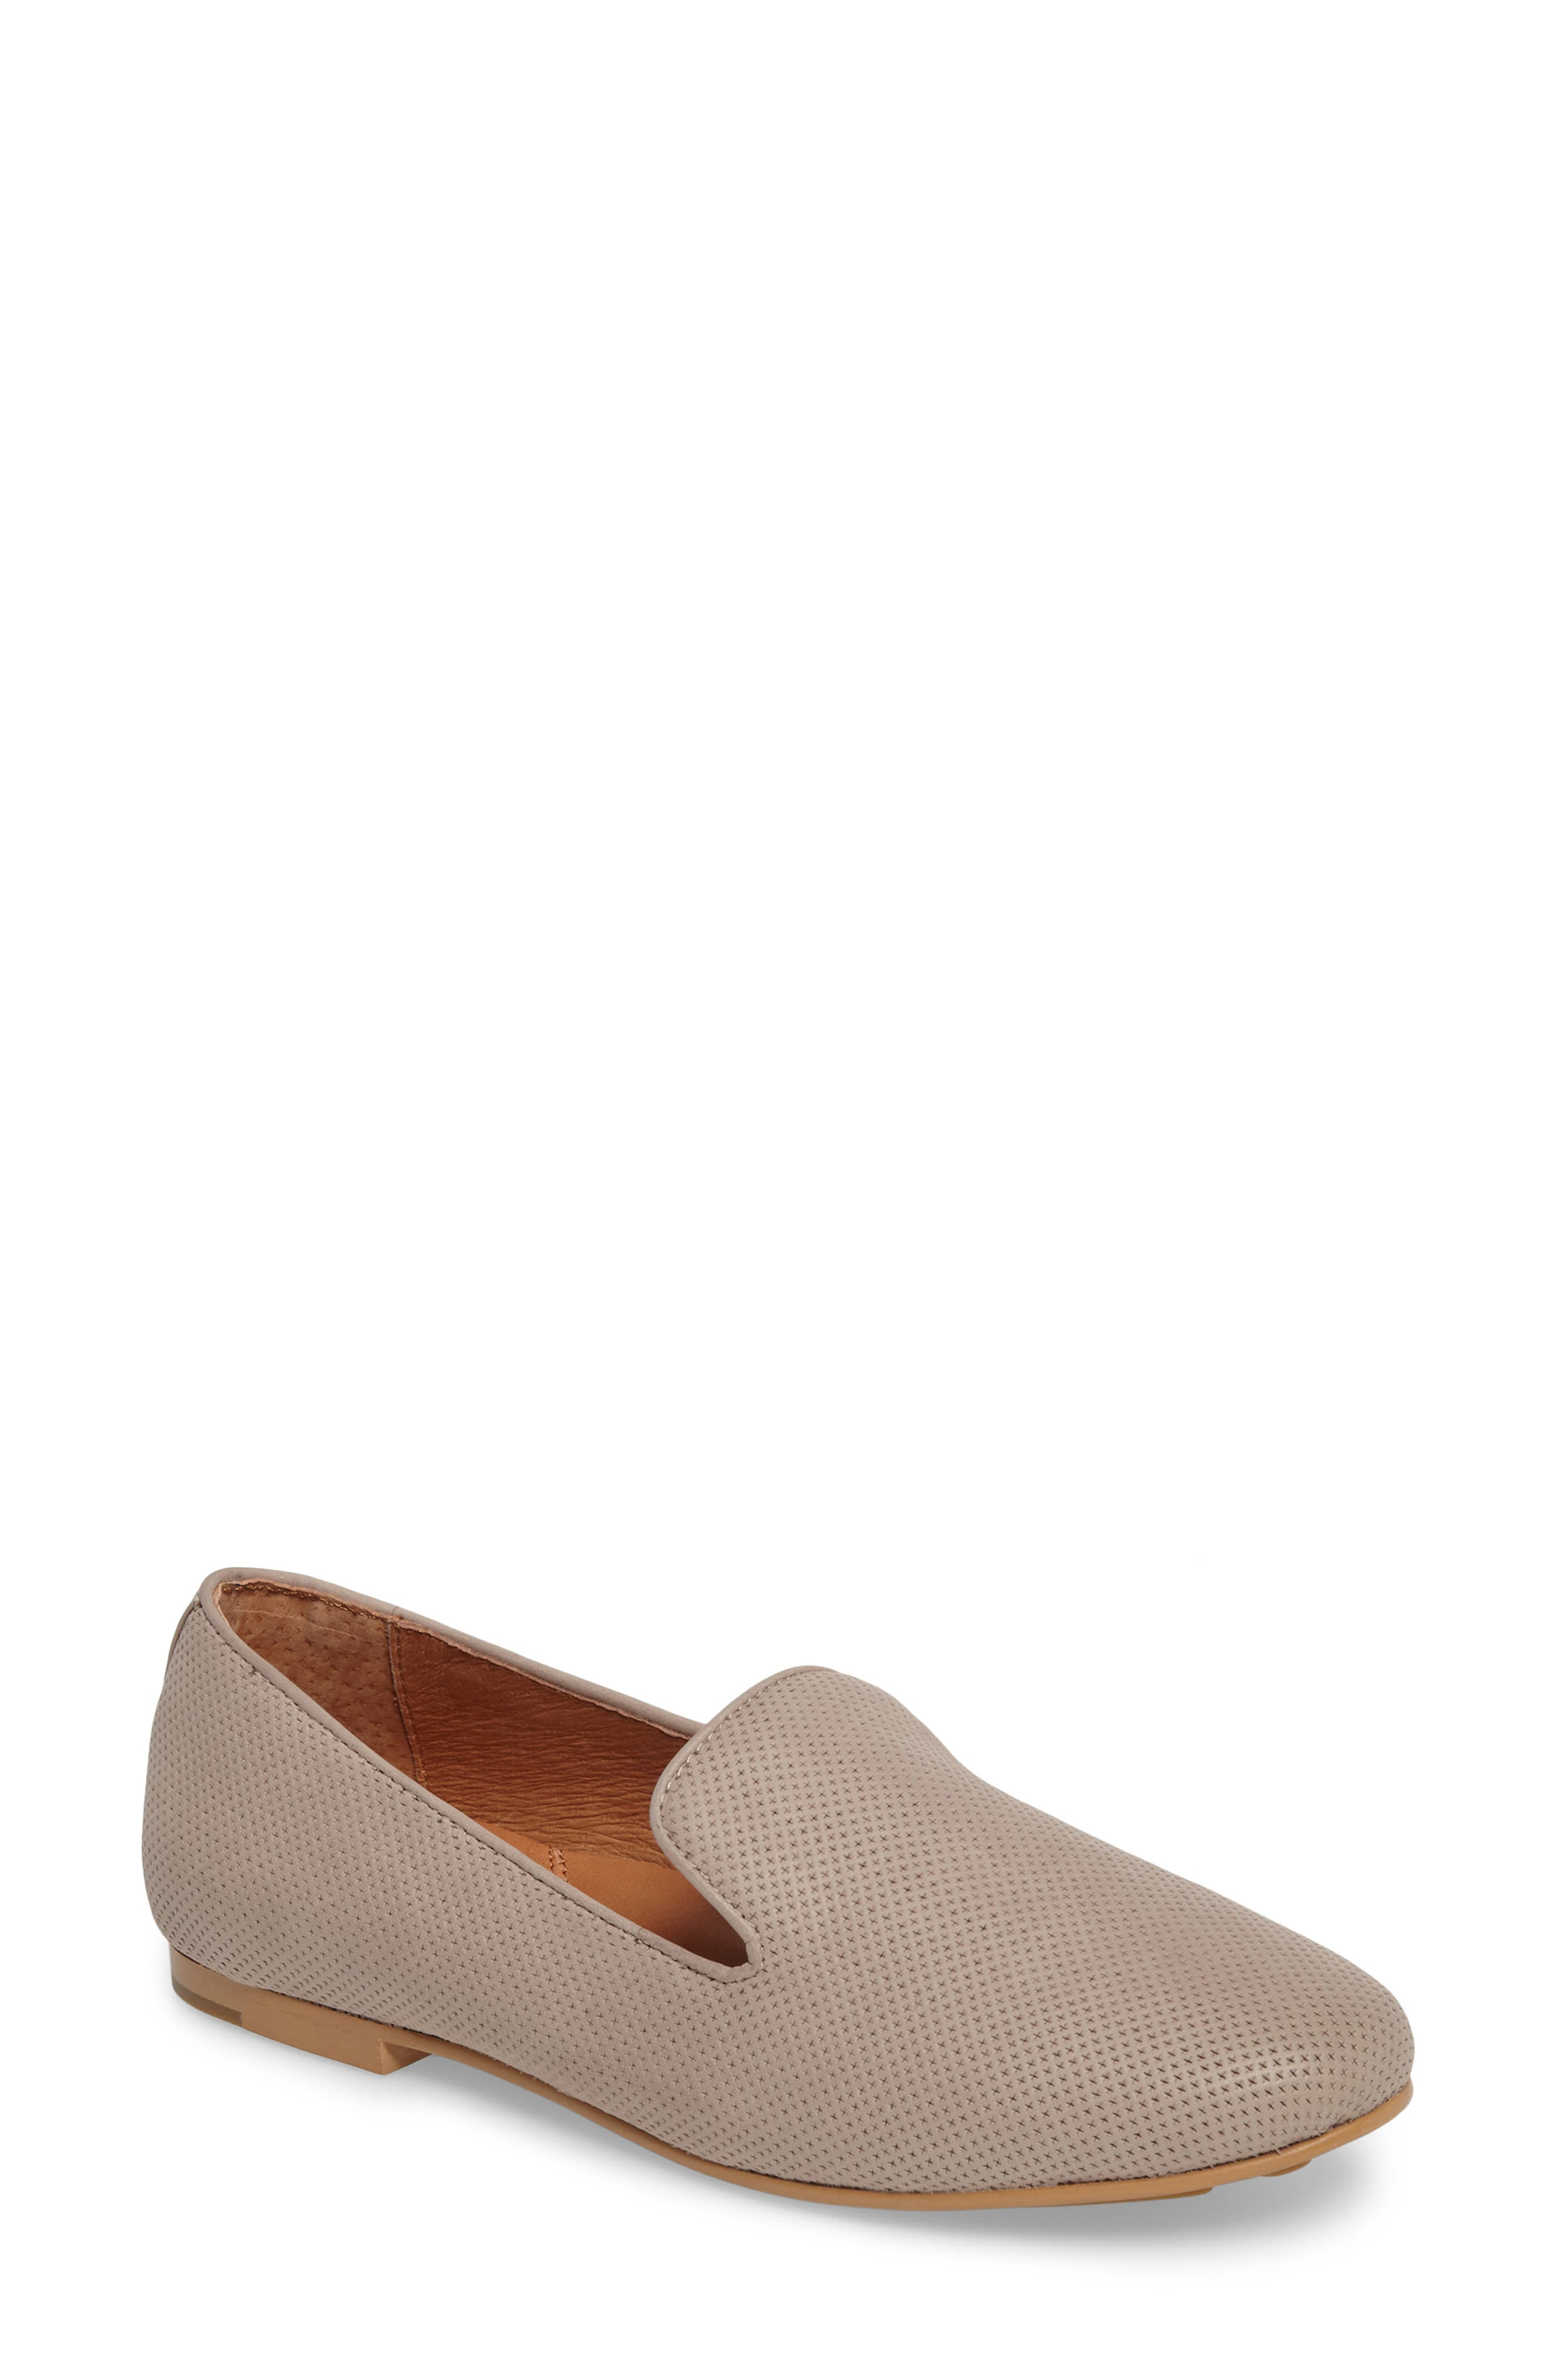 Gentle Souls By Kenneth Cole Eugene Flat- Ivory